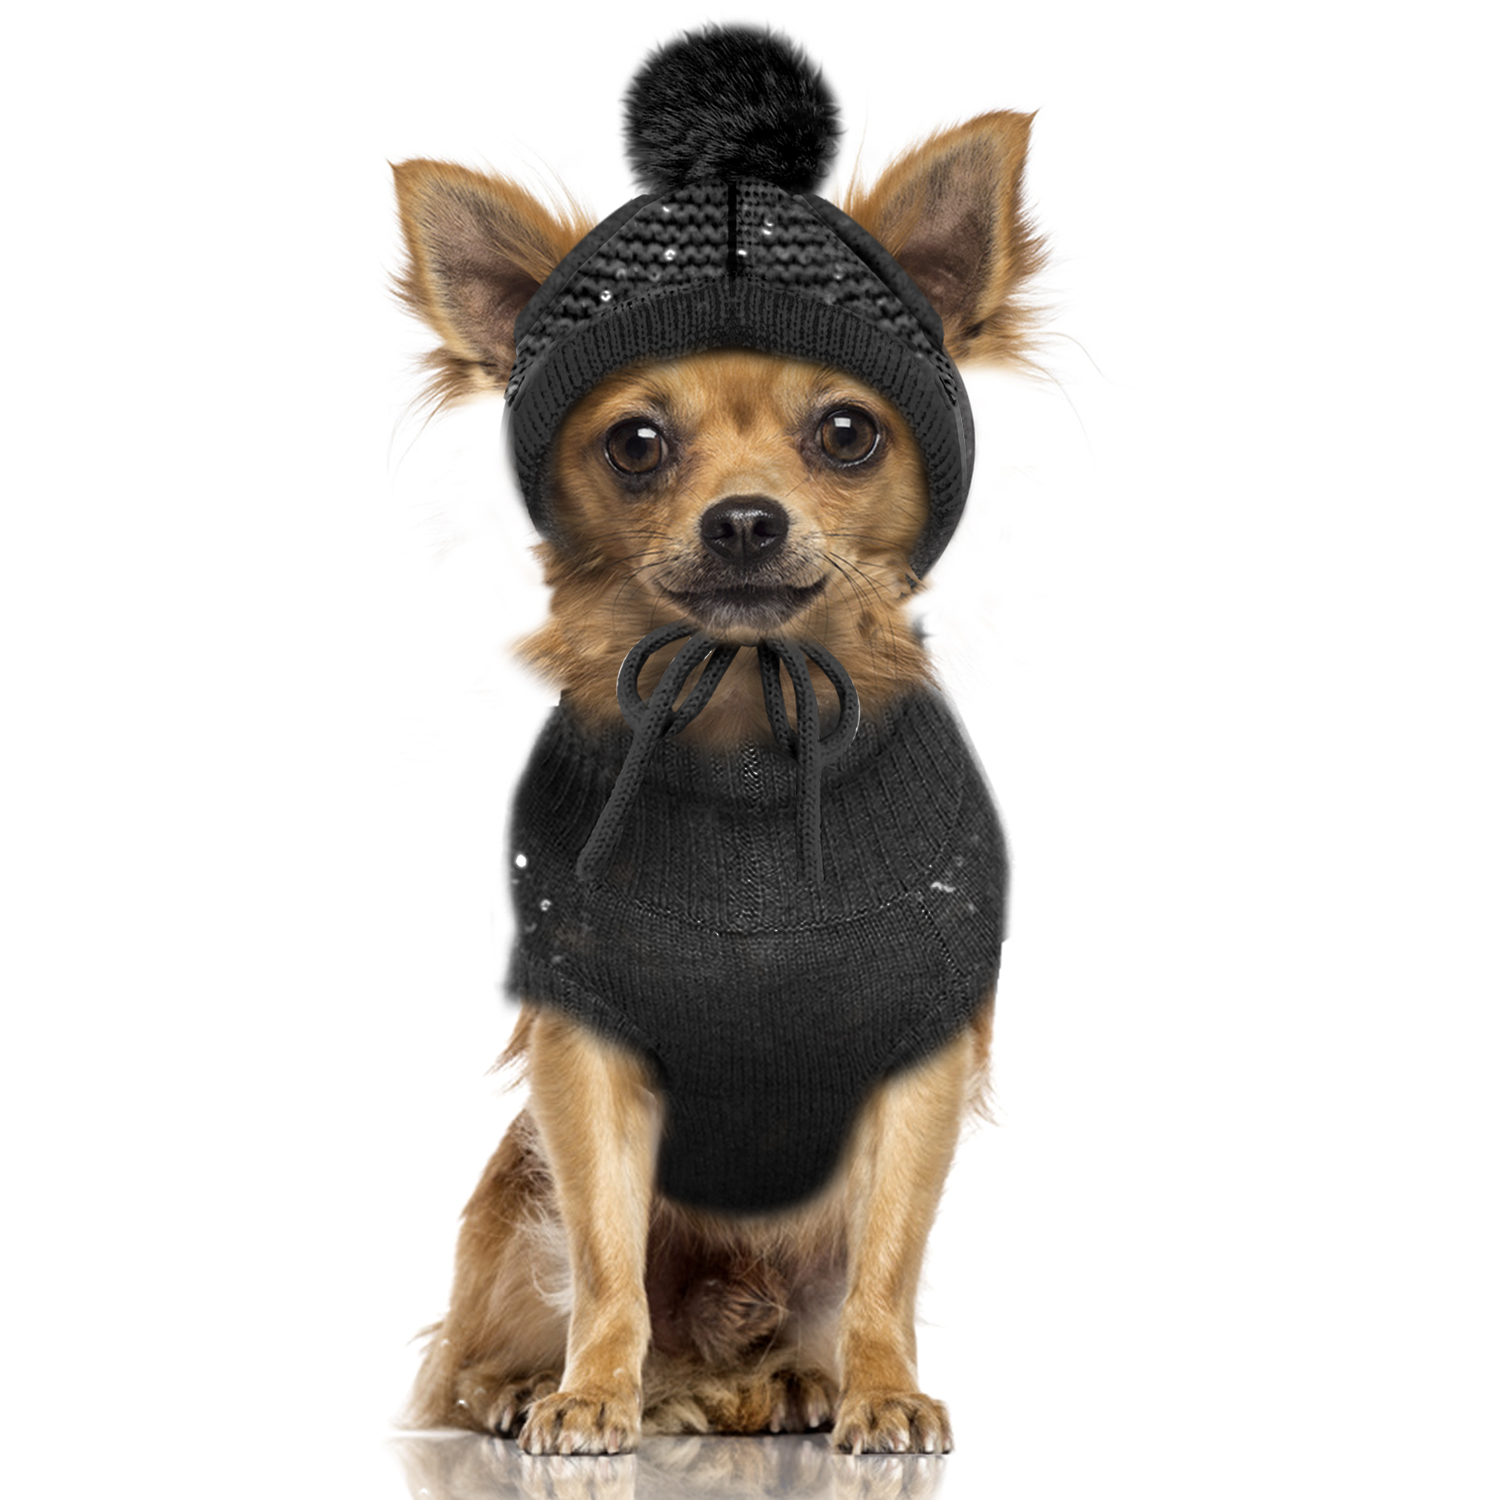 Milk-and-Pepper-Hundepullover-Cassiopee-mit-Hund59d3a2506869c